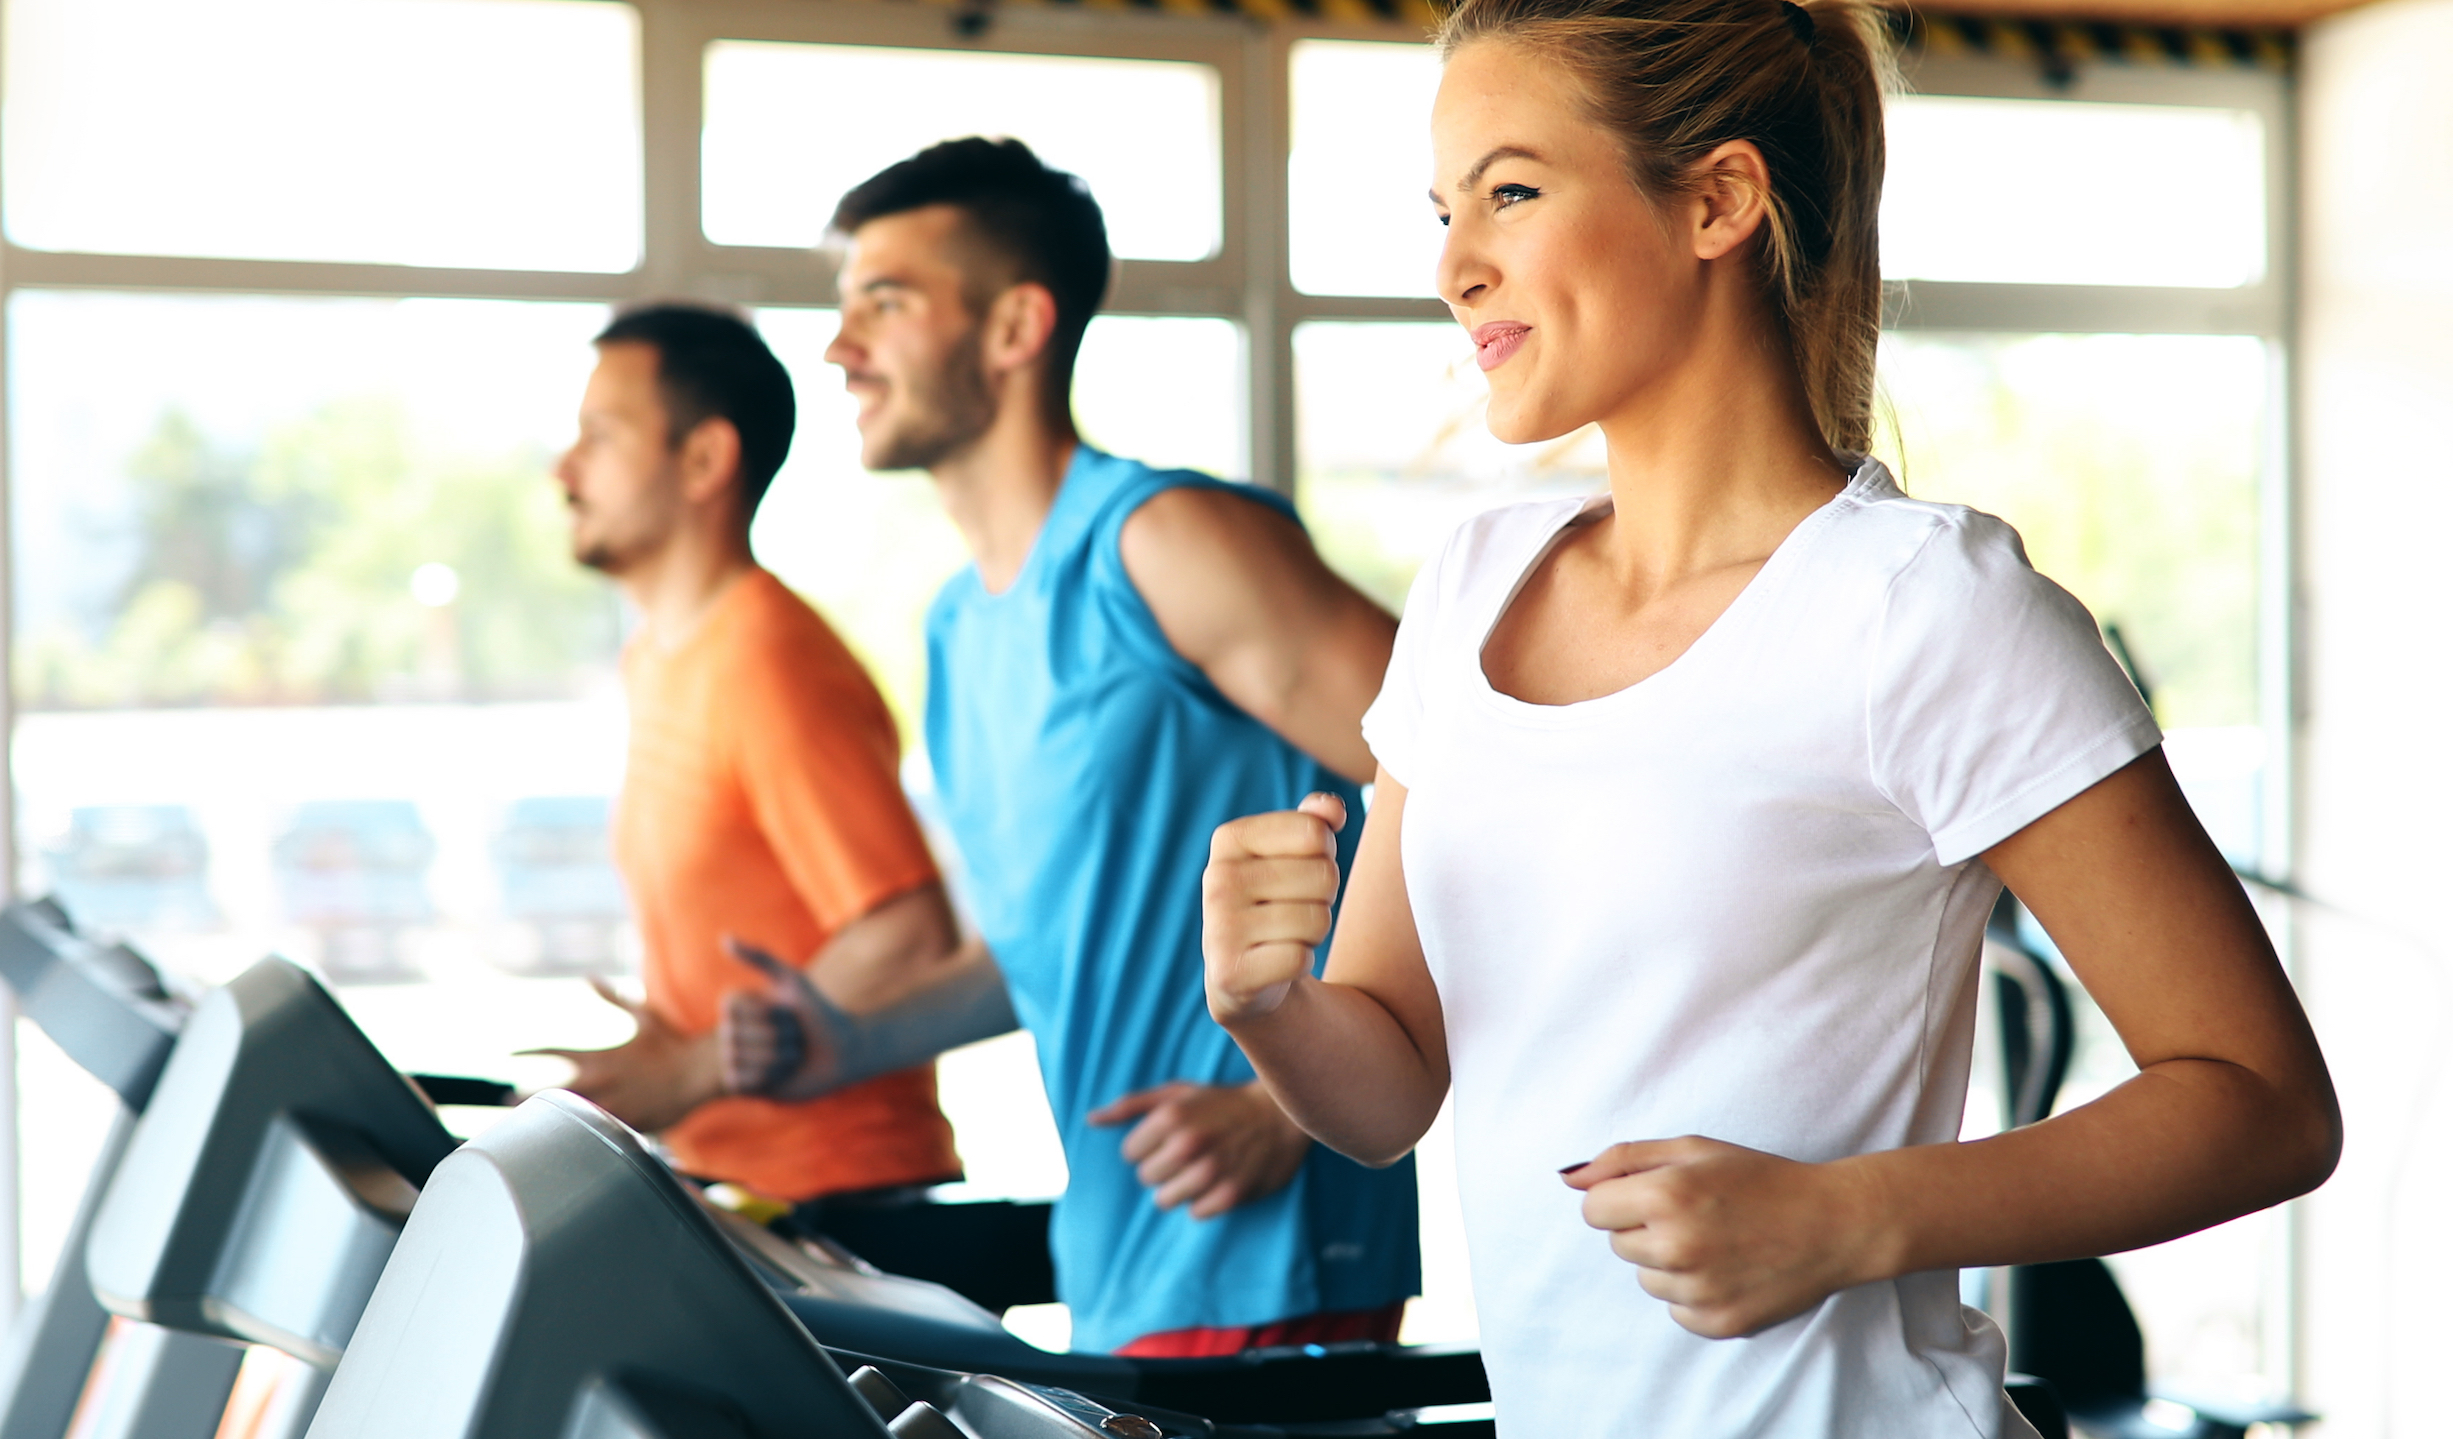 Researchers at the University of Bath have found that eating breakfast before exercise can optimize the benefits of a workout.